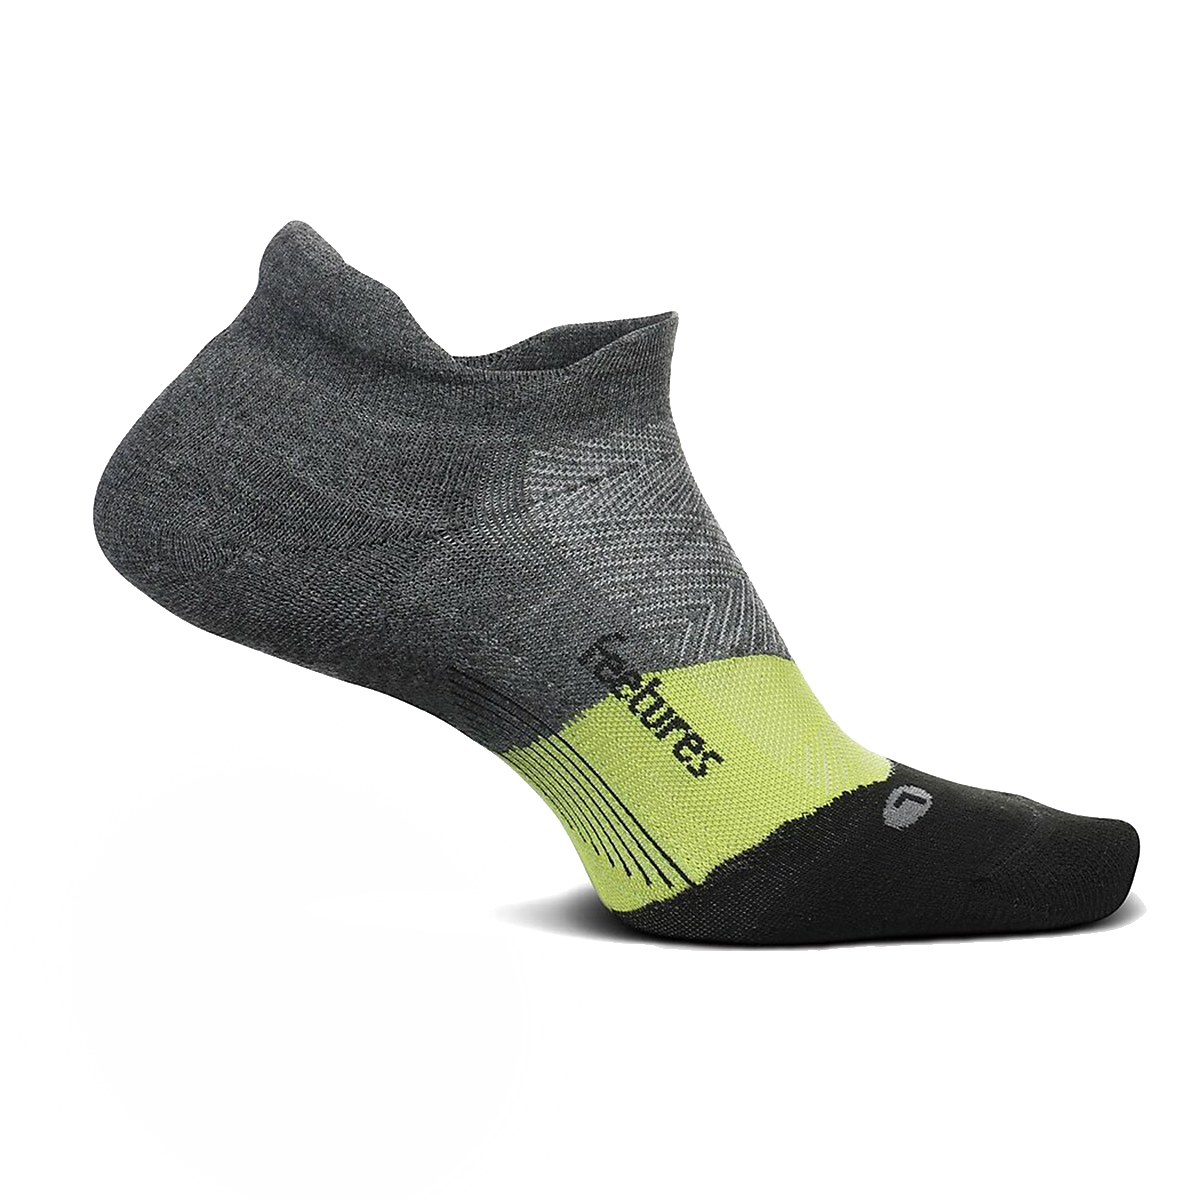 Feetures Elite Ultra Light No Show Sock - Color: Night Vision - Size: S, Night Vision, large, image 1